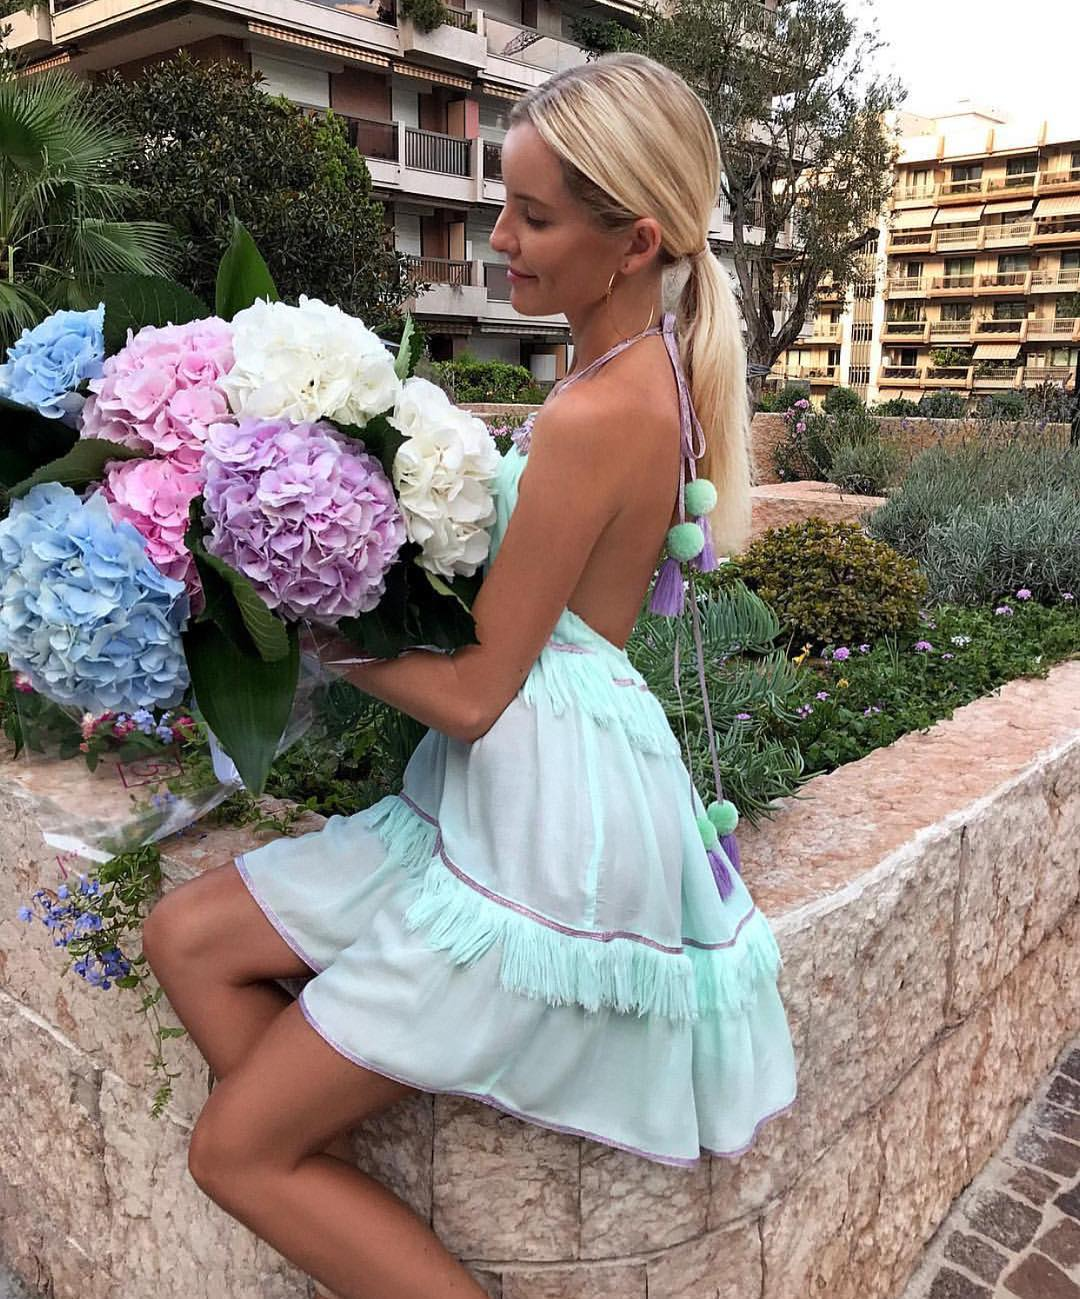 Pastel Turquoise Linen Dress With Open Back For Summer Trips 2019